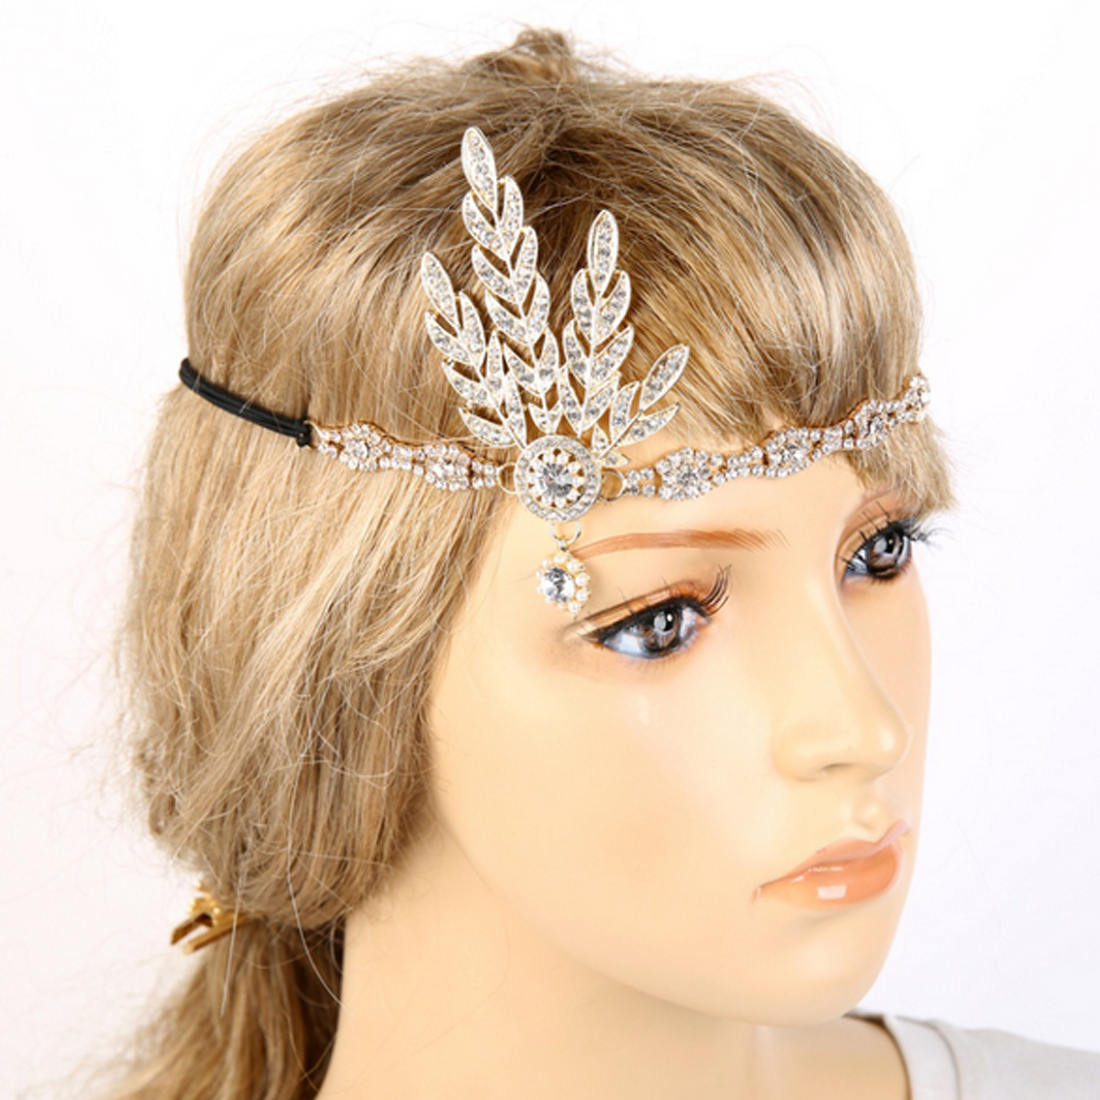 Great Gatsby Inspired Hair Accessories Wedding Ideas